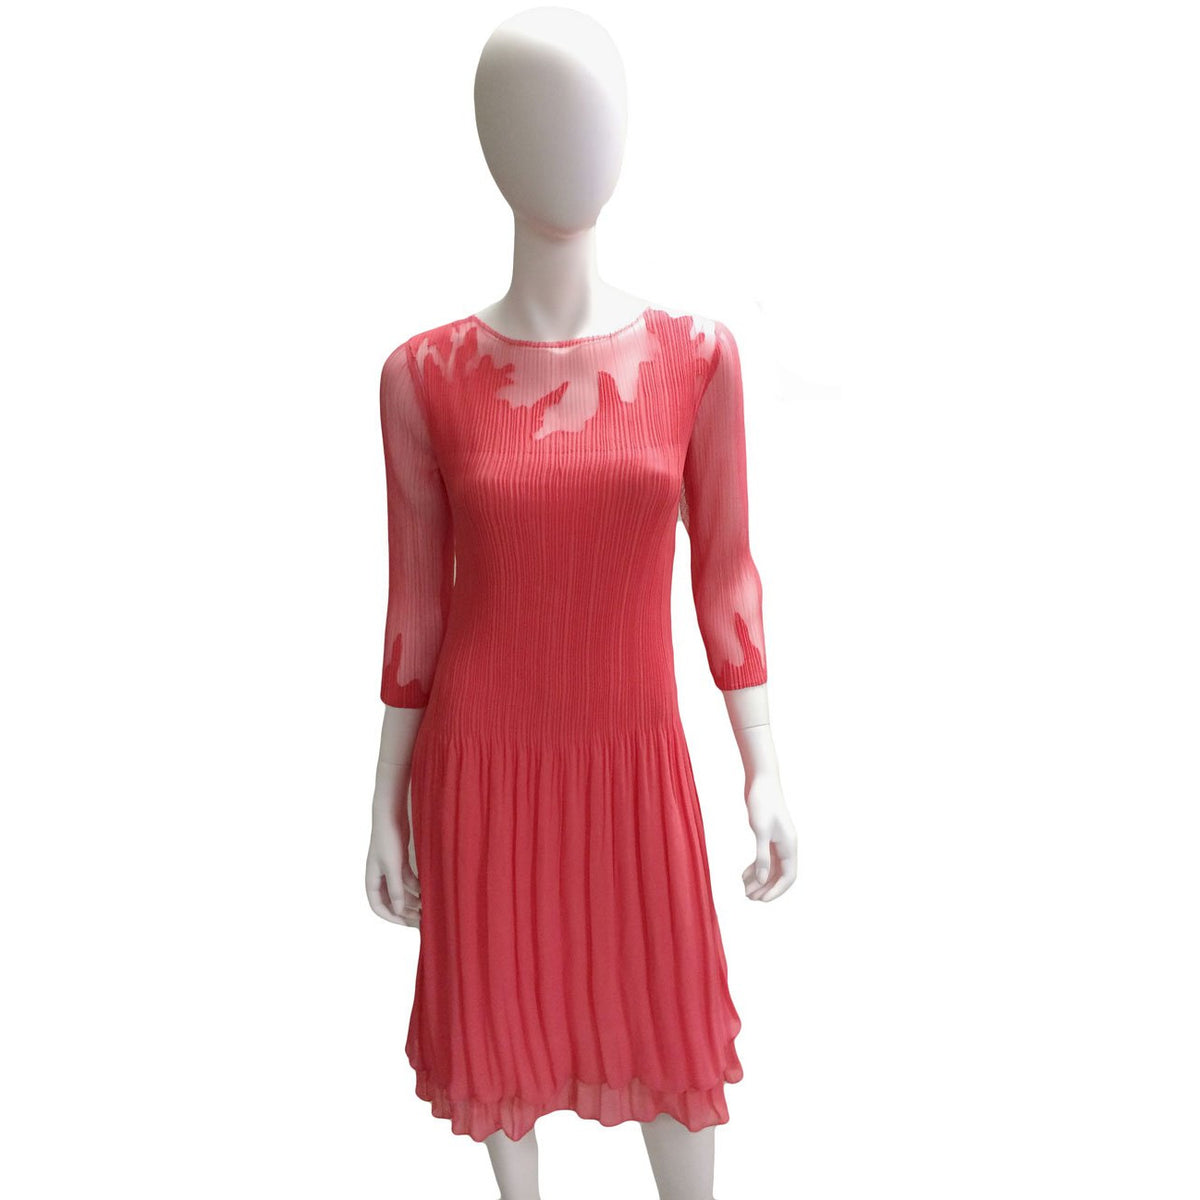 Leaf Illusion 3/4 Sleeve Dress - Coral